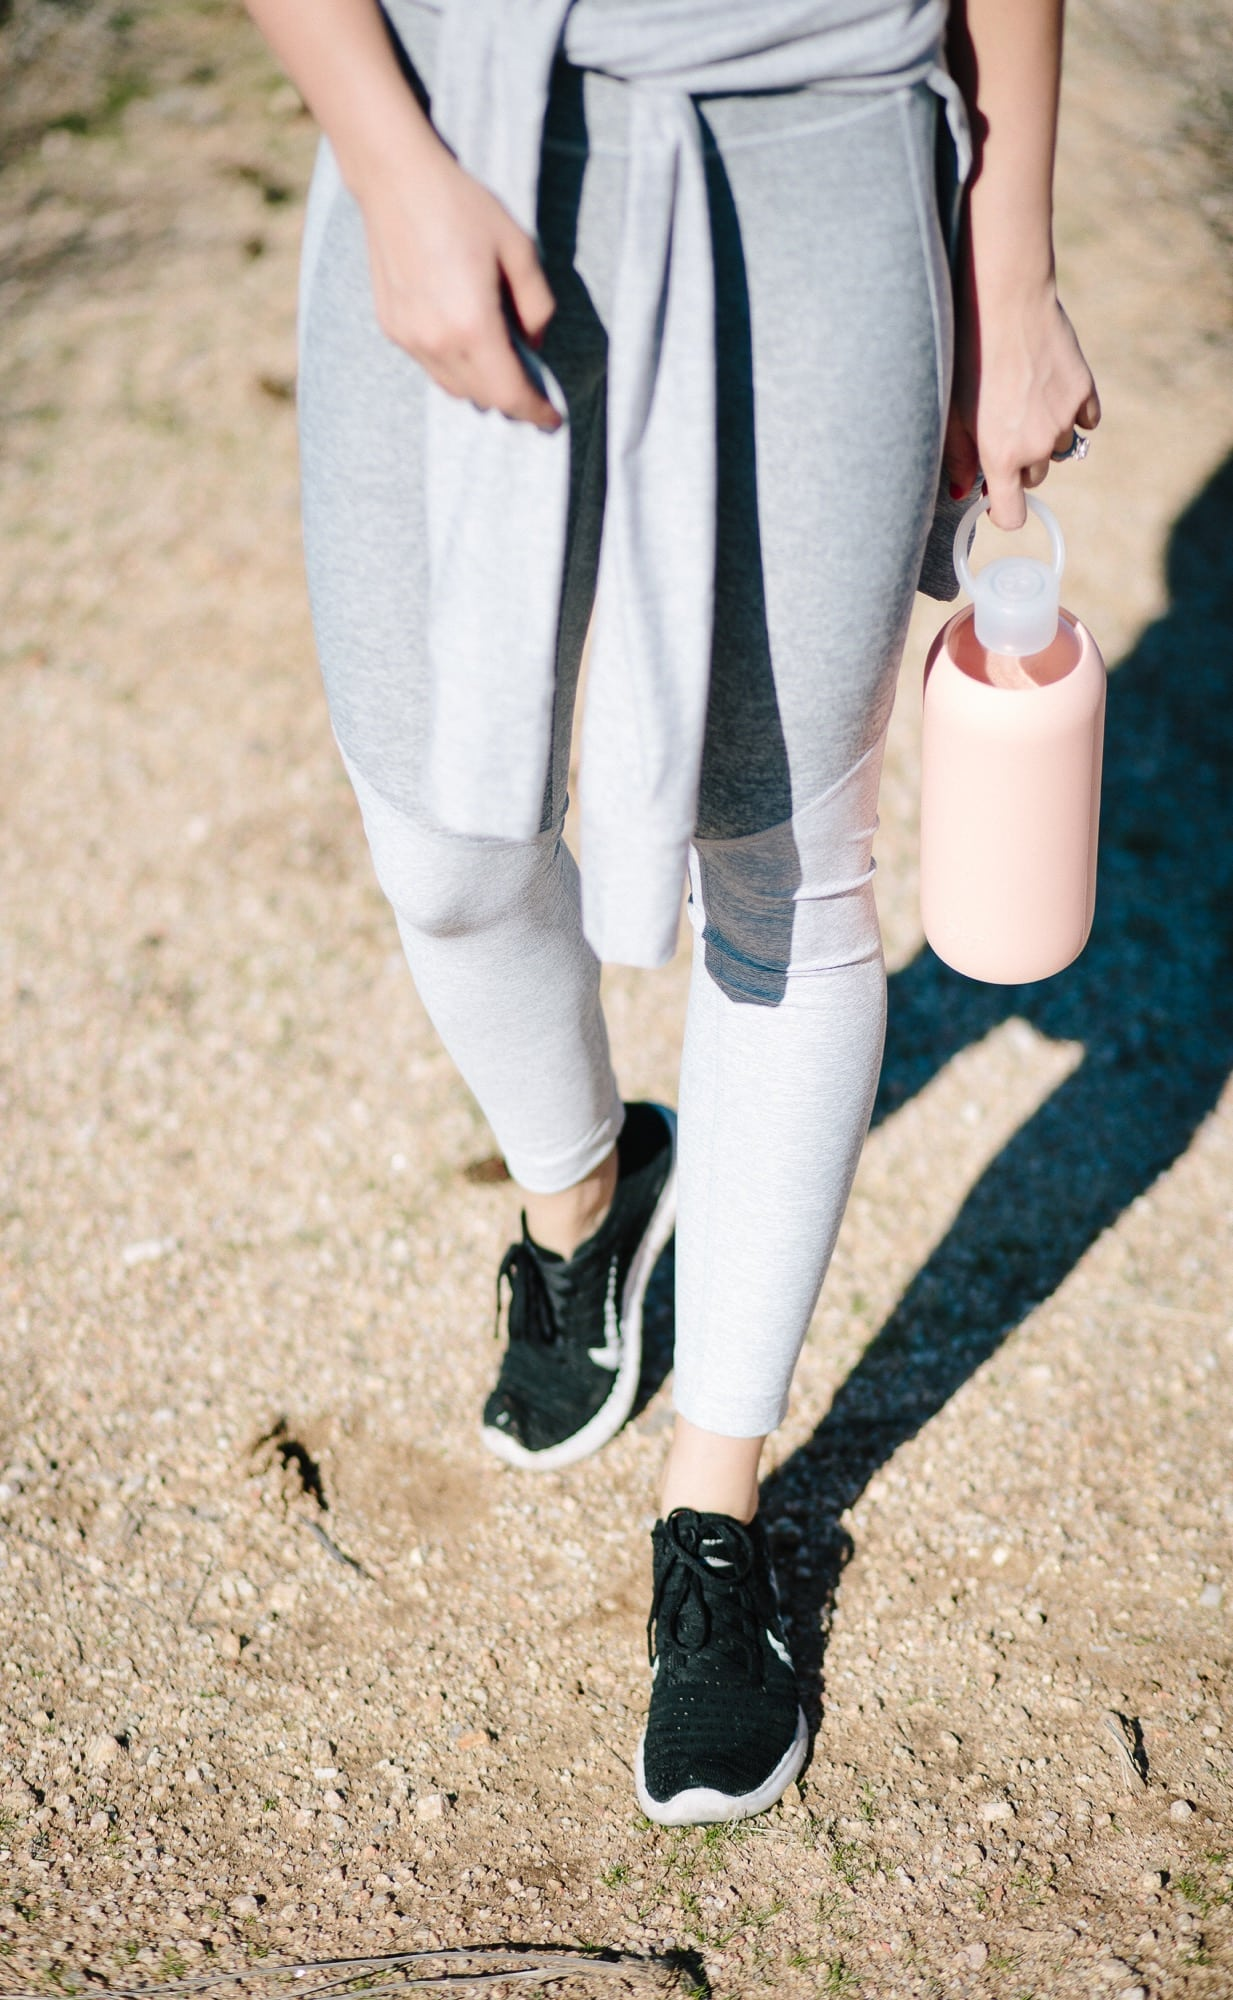 Nikes and 3/4 Leggings from Outdoor Voices